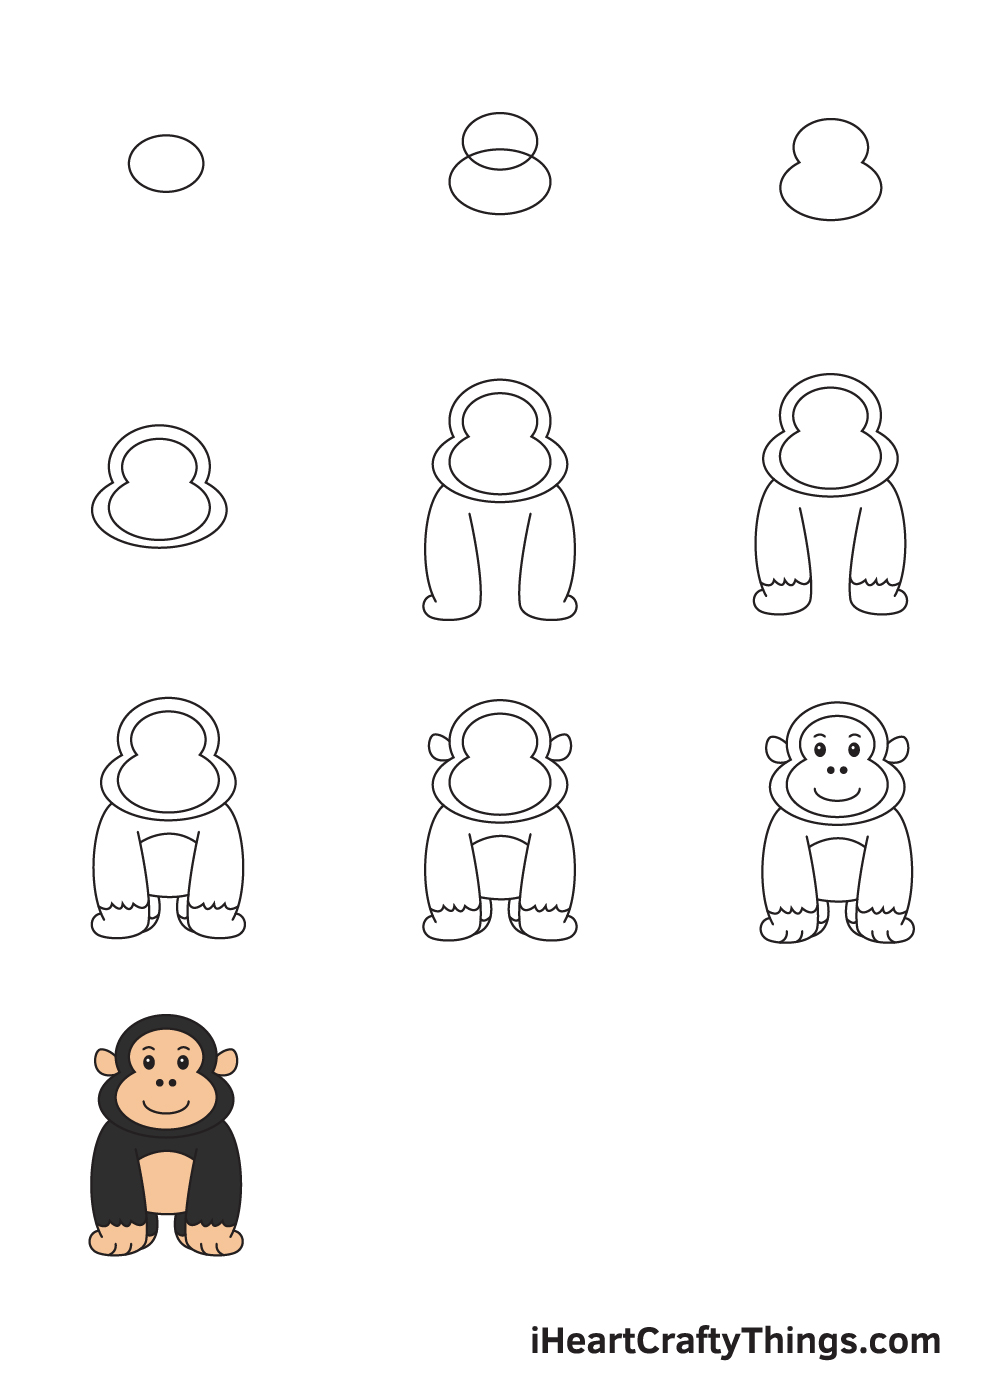 drawing gorilla in 9 steps